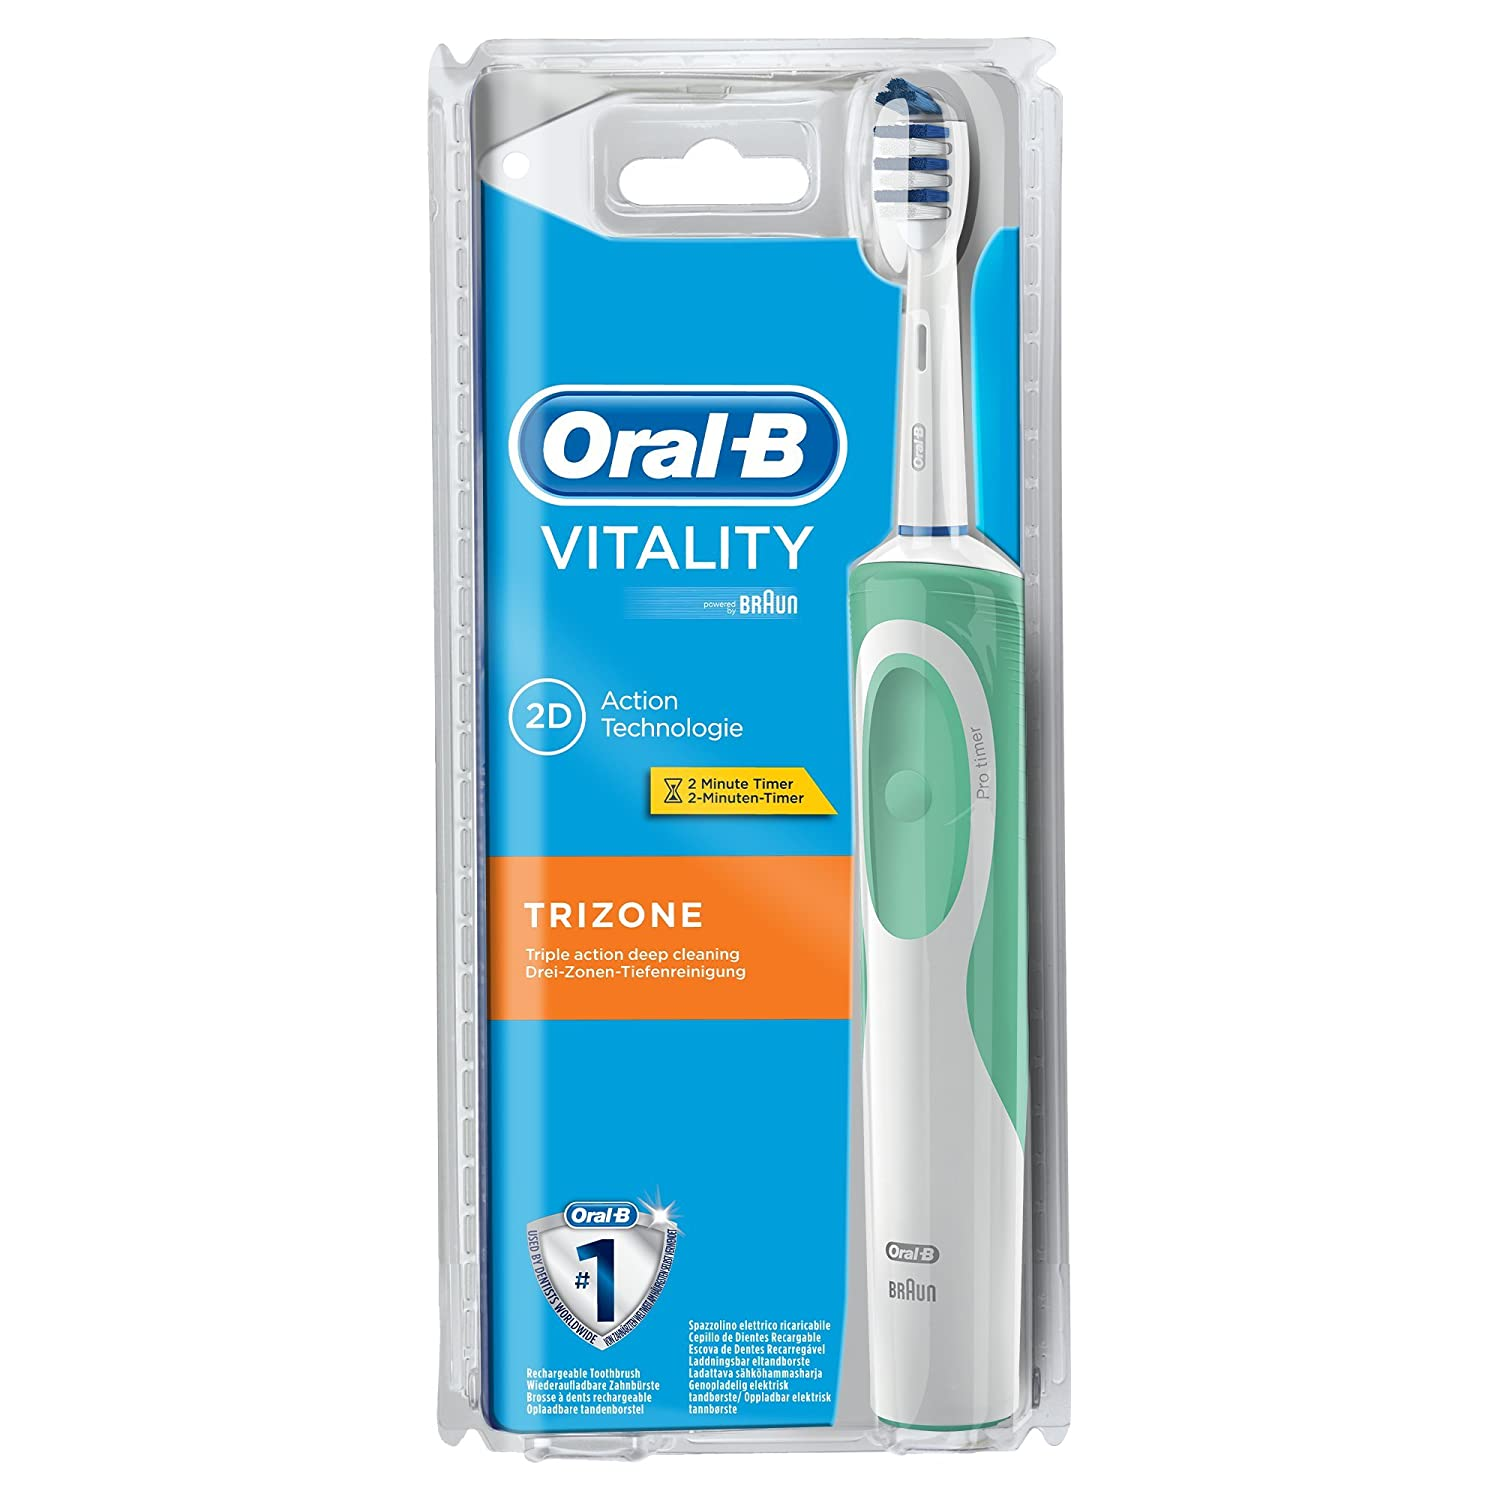 oral b vitality elektrische zahnb rste trizone f r 13 41 t glich die. Black Bedroom Furniture Sets. Home Design Ideas